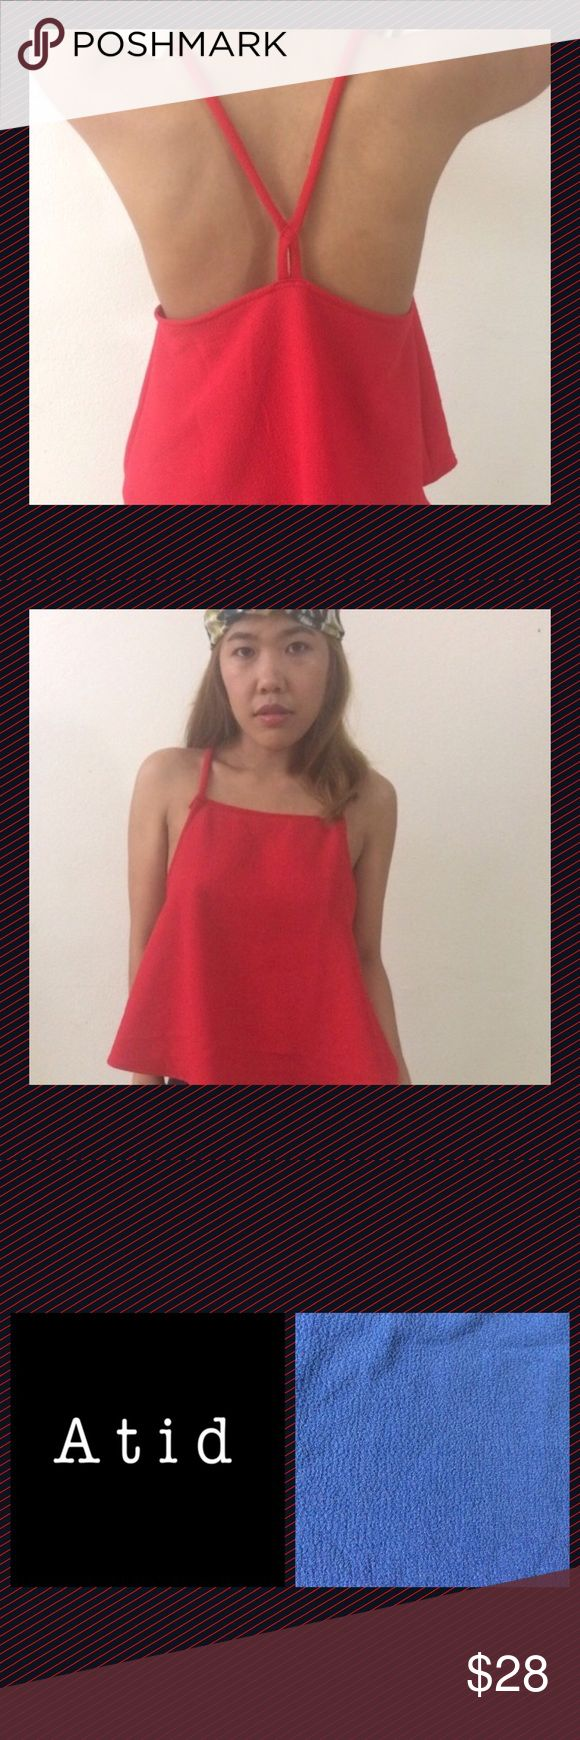 Atid Clothing's 'Dream Top' in Ava Red❤️ A fun t-strap tank, in a great fabric that's waffled (blue swatch helps to see).  I adore the straight cut in front & the sexy back. Wear sans bra or add a strappy one to add more interest. I chose this piece as my kids convinced me it's now or never for that yoga/Buddhist tat I've been waiting for; symbol for enlightenment 👍🏼, right shoulder. For me summer means red toenails, and I'm a sucker for red lips. Hope you're as enamored. Enjoy!💚💗 Atid…